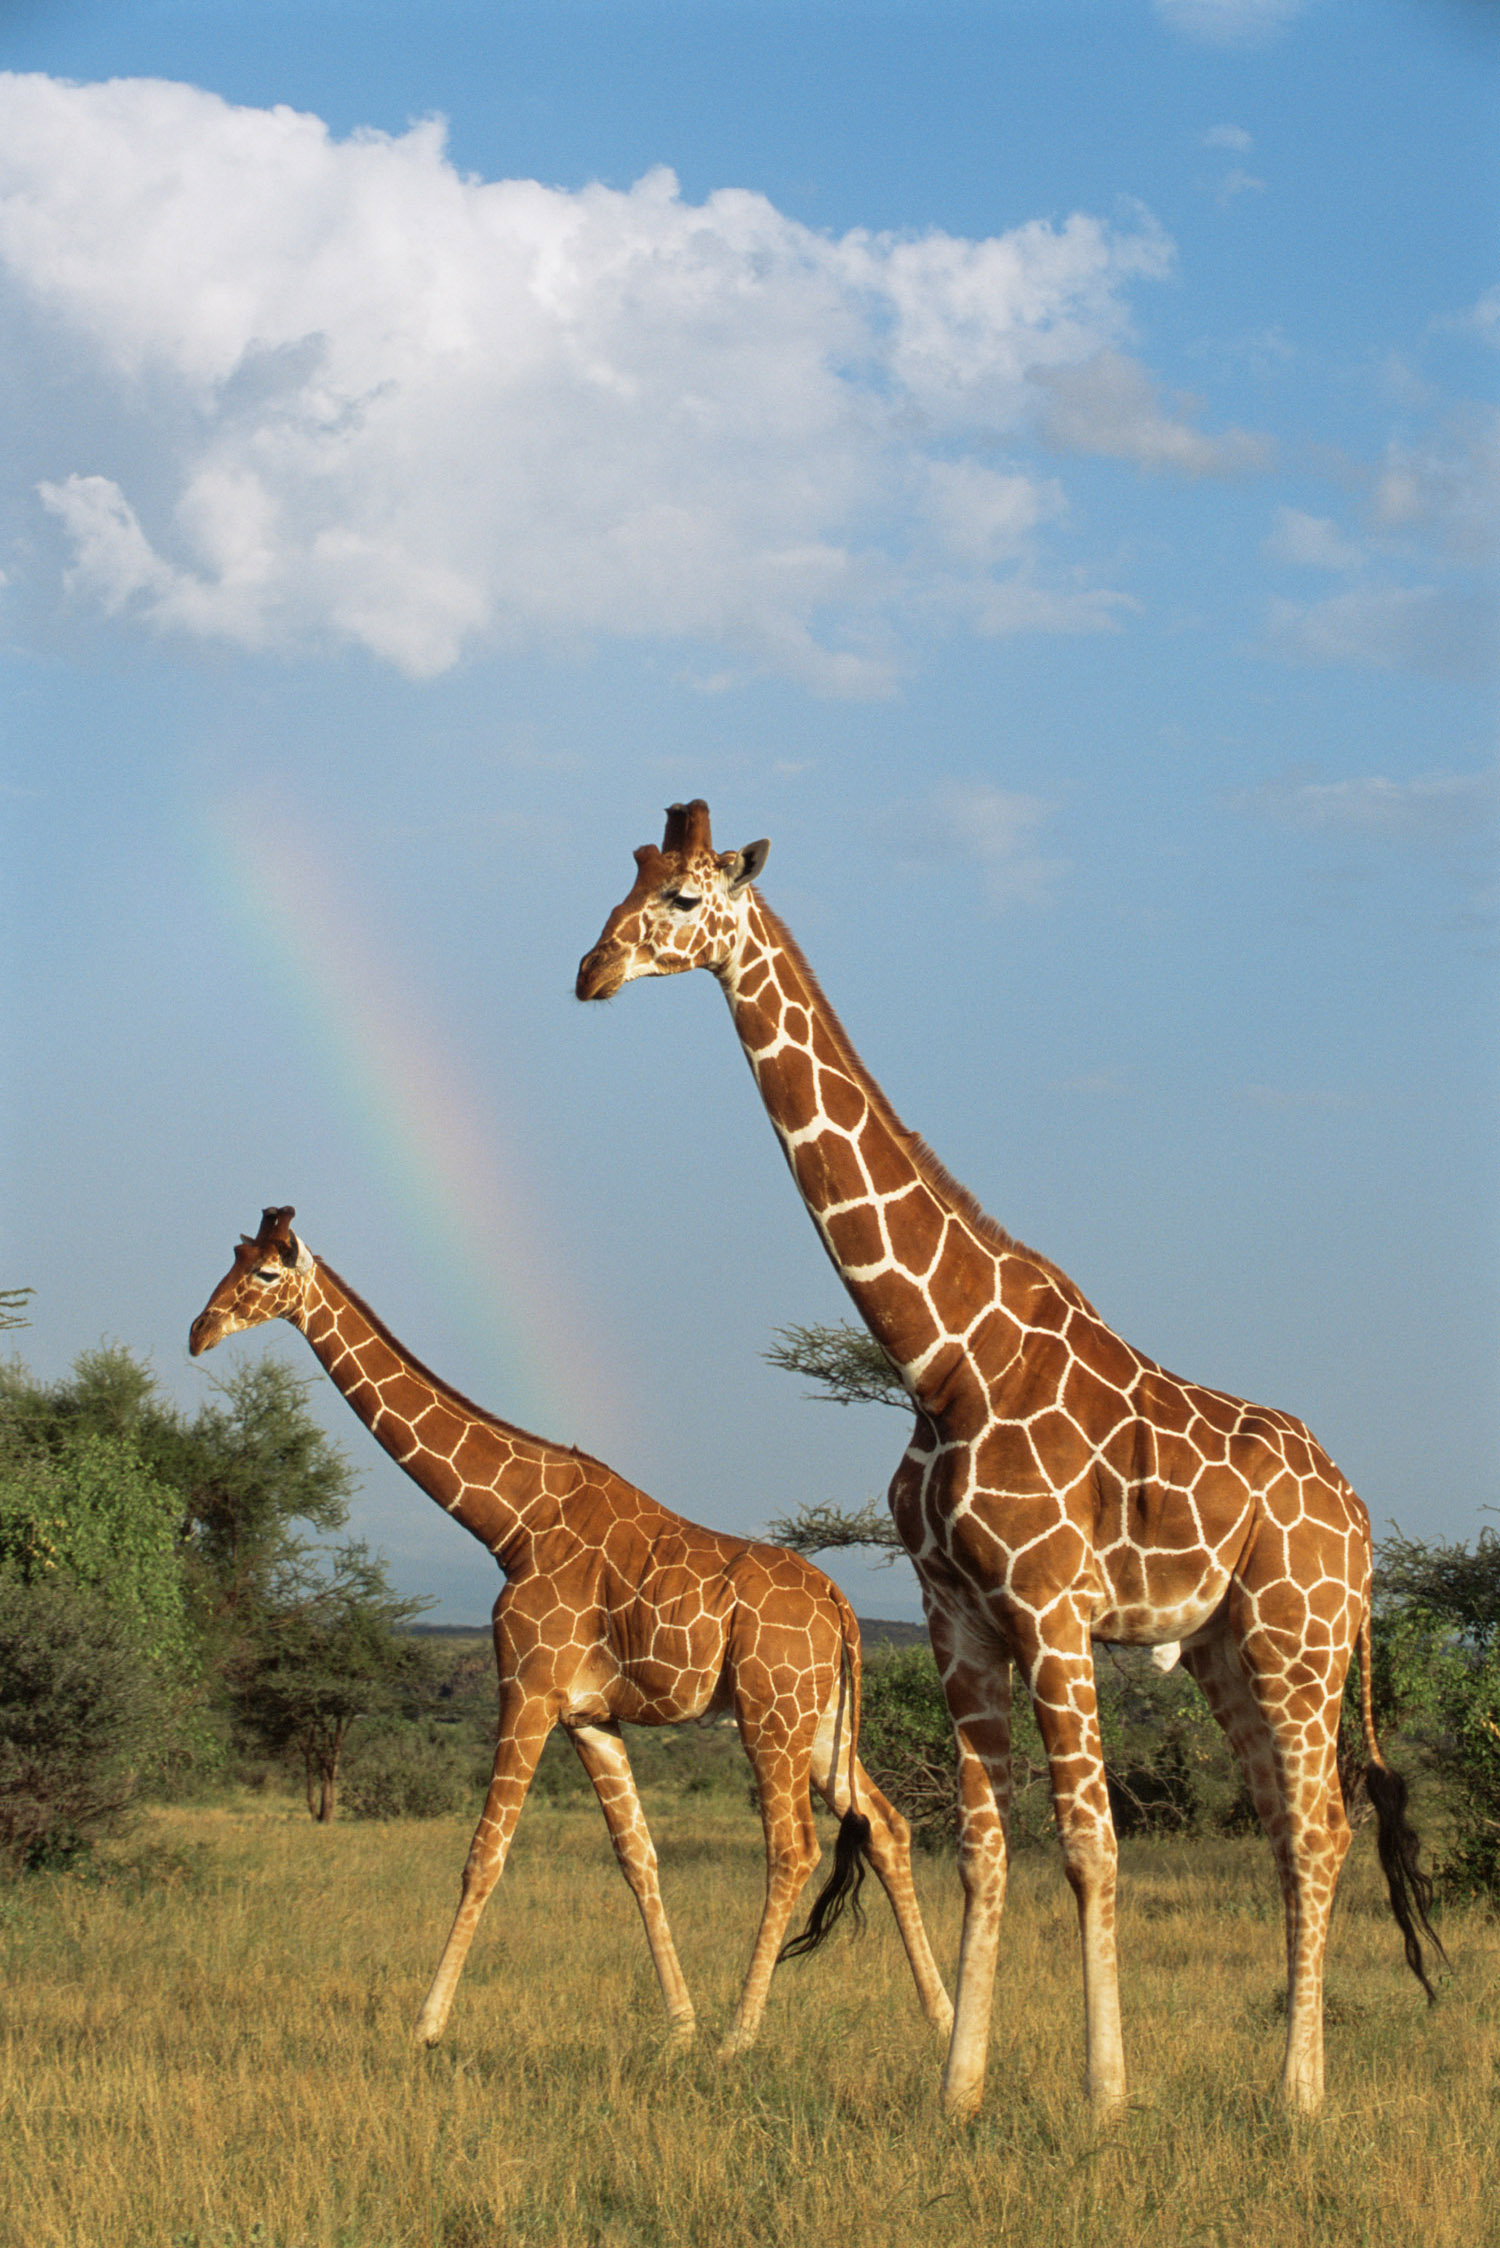 Reticulated giraffes and rainbow, Samburu National Reserve, Kenya